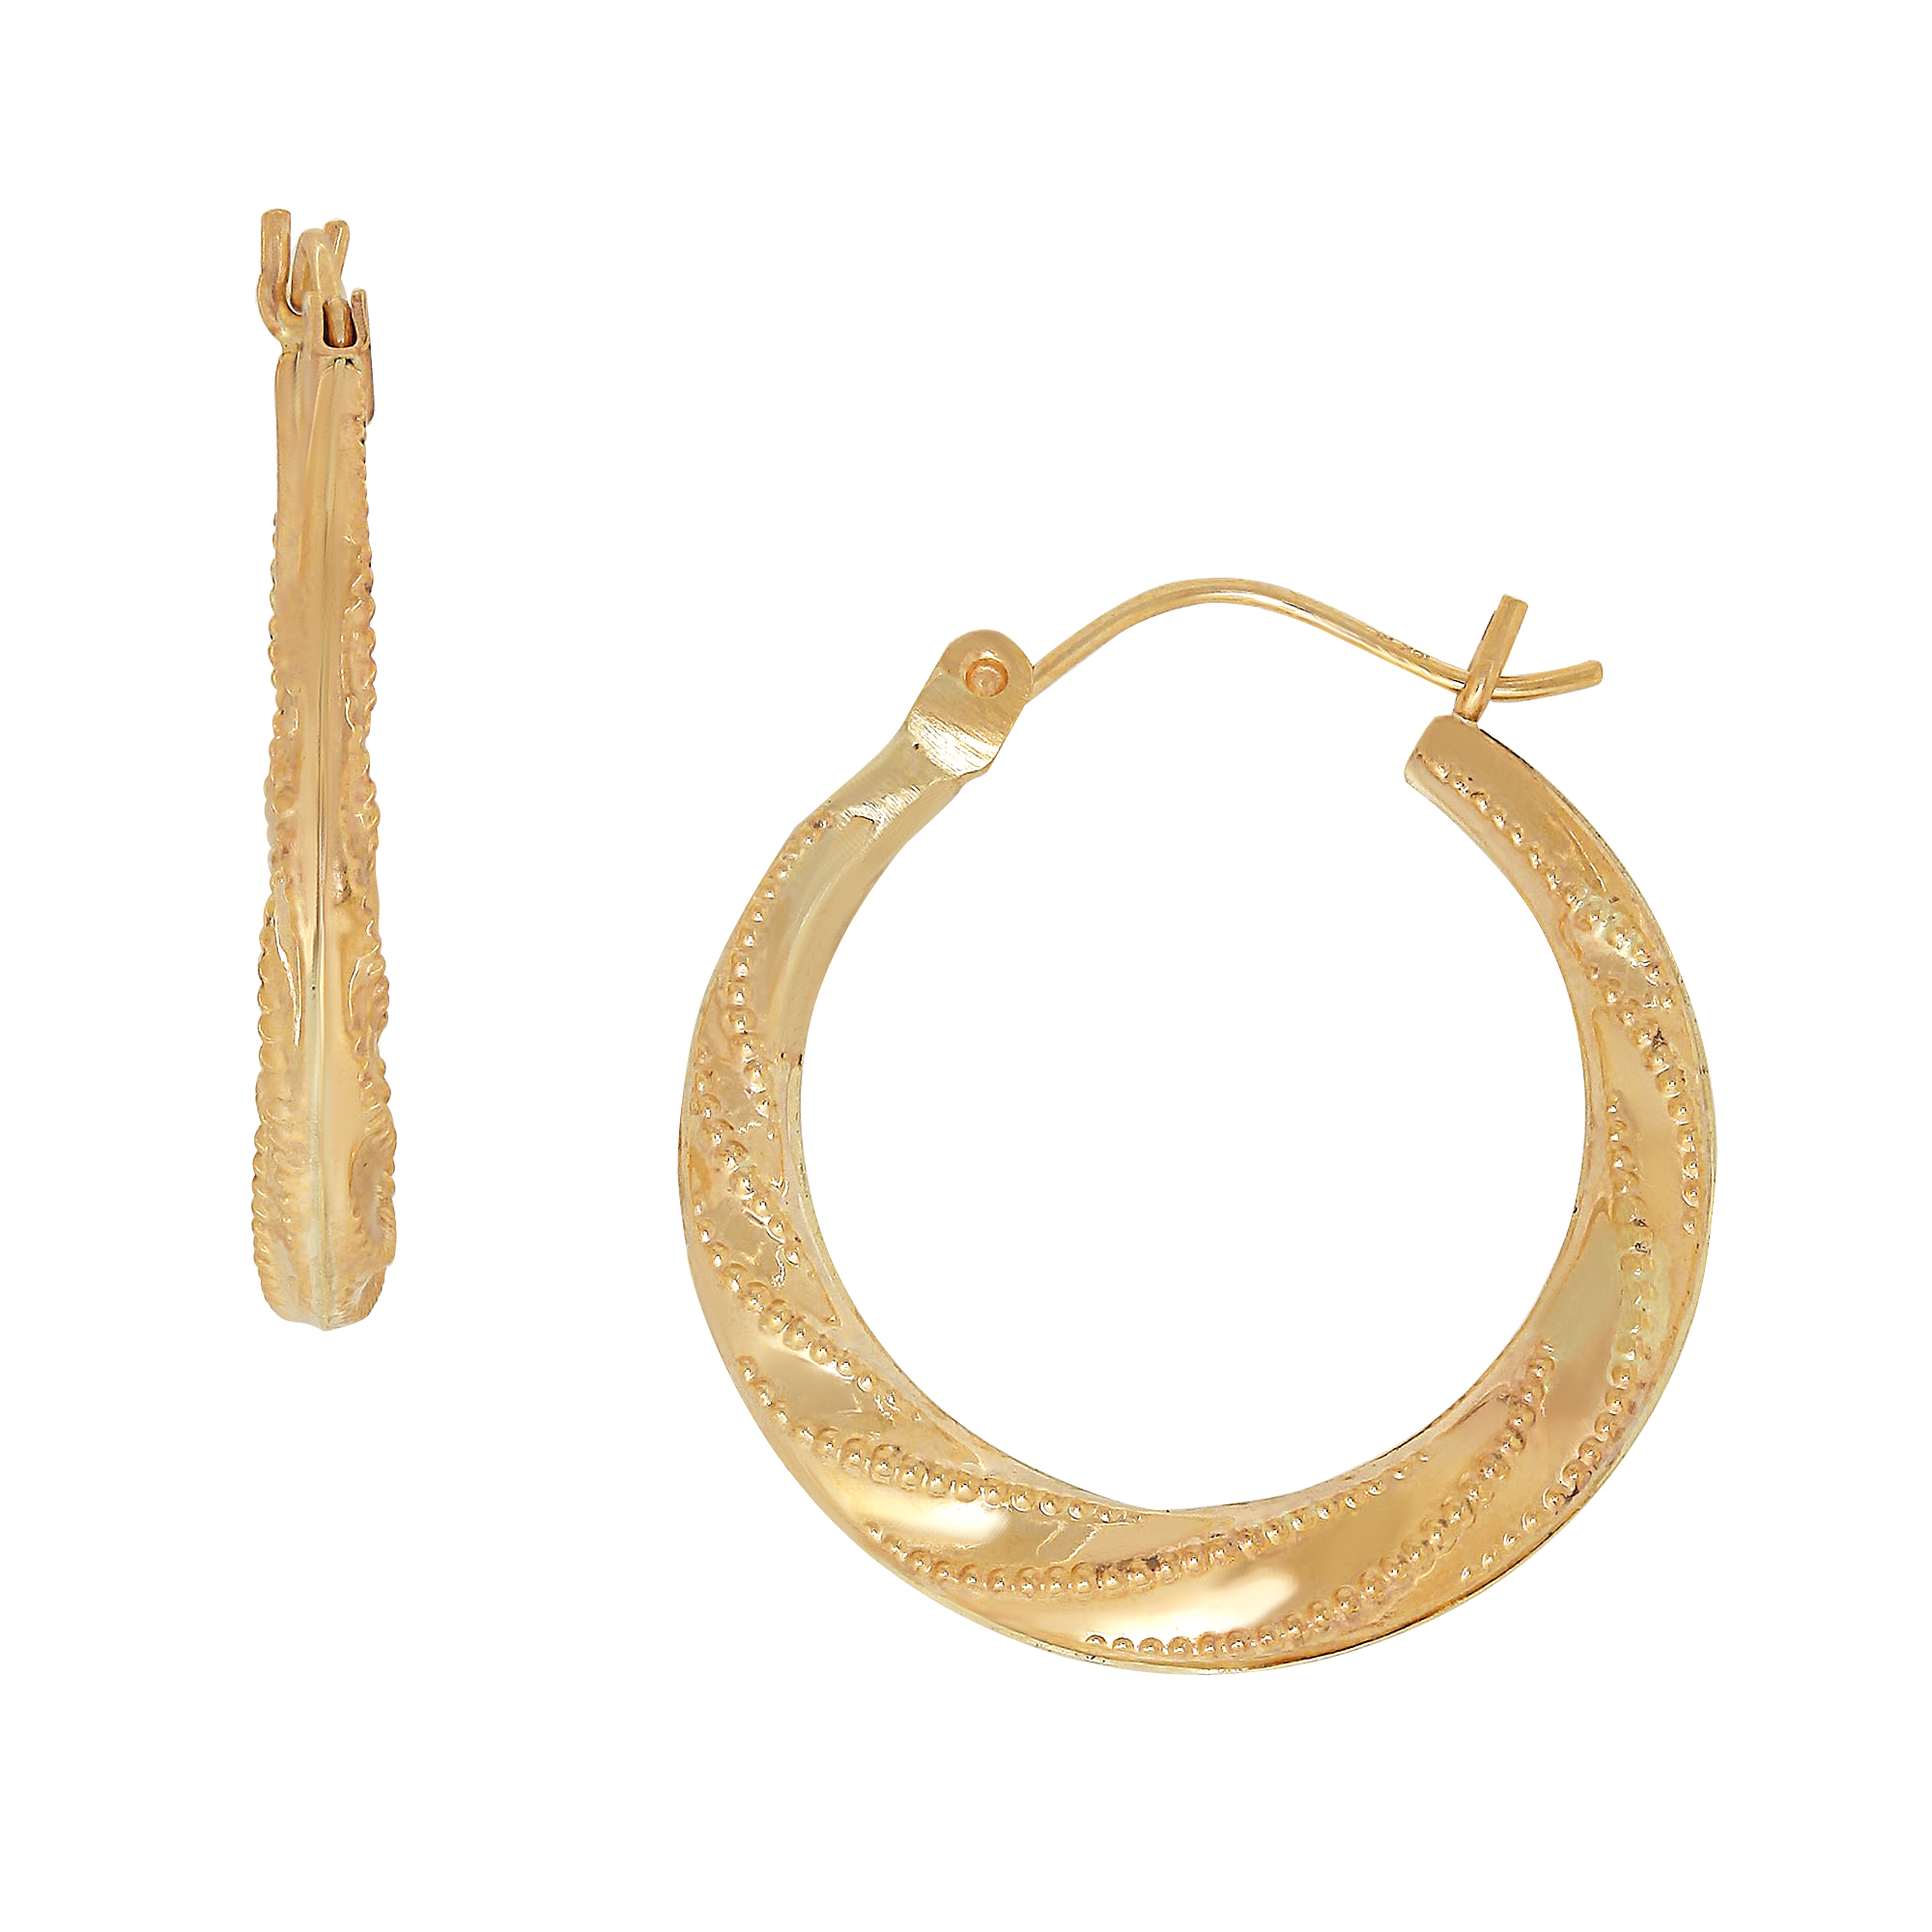 10 Karat Yellow Gold Swirl With Bead Pattern Hoop Earrings